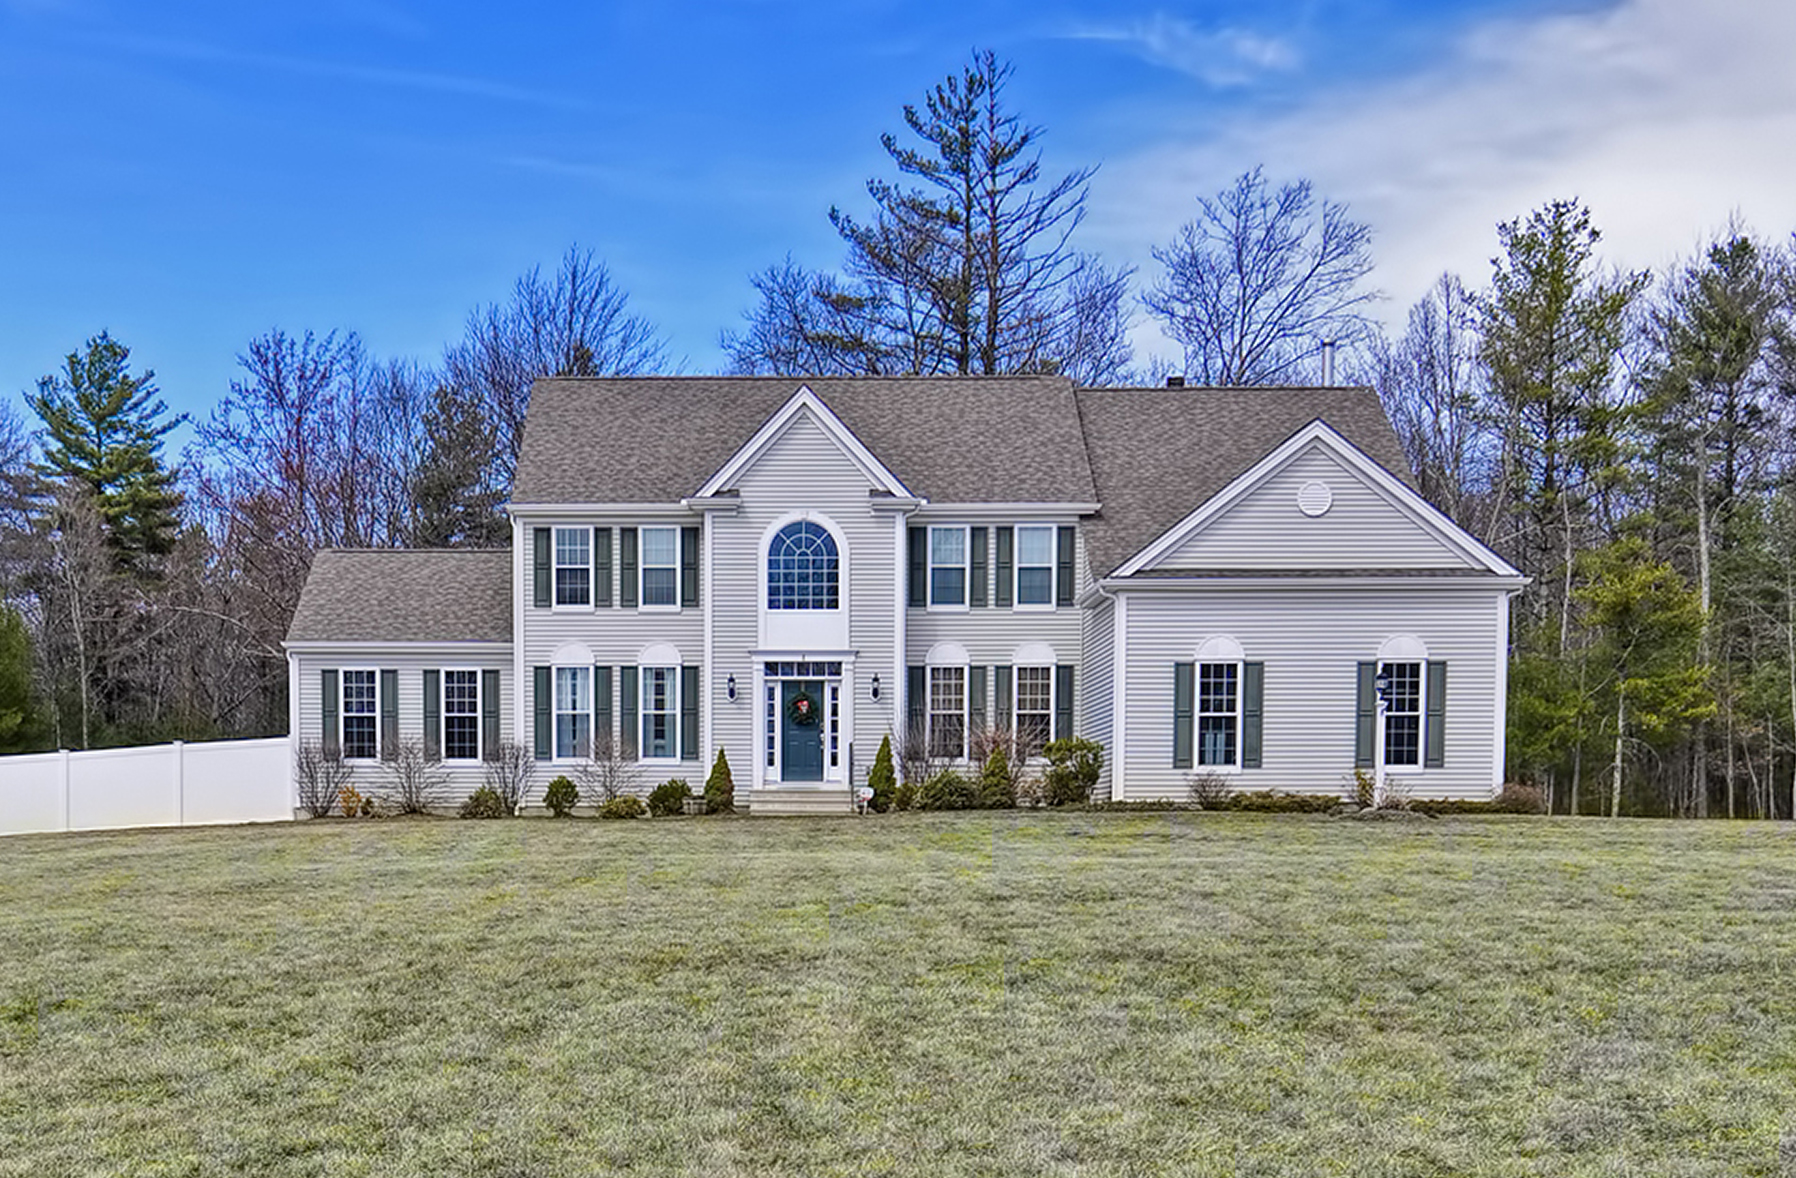 Single Family Home for Sale at Expansive Colonial 8 Francis Drive Upton, Massachusetts 01568 United States